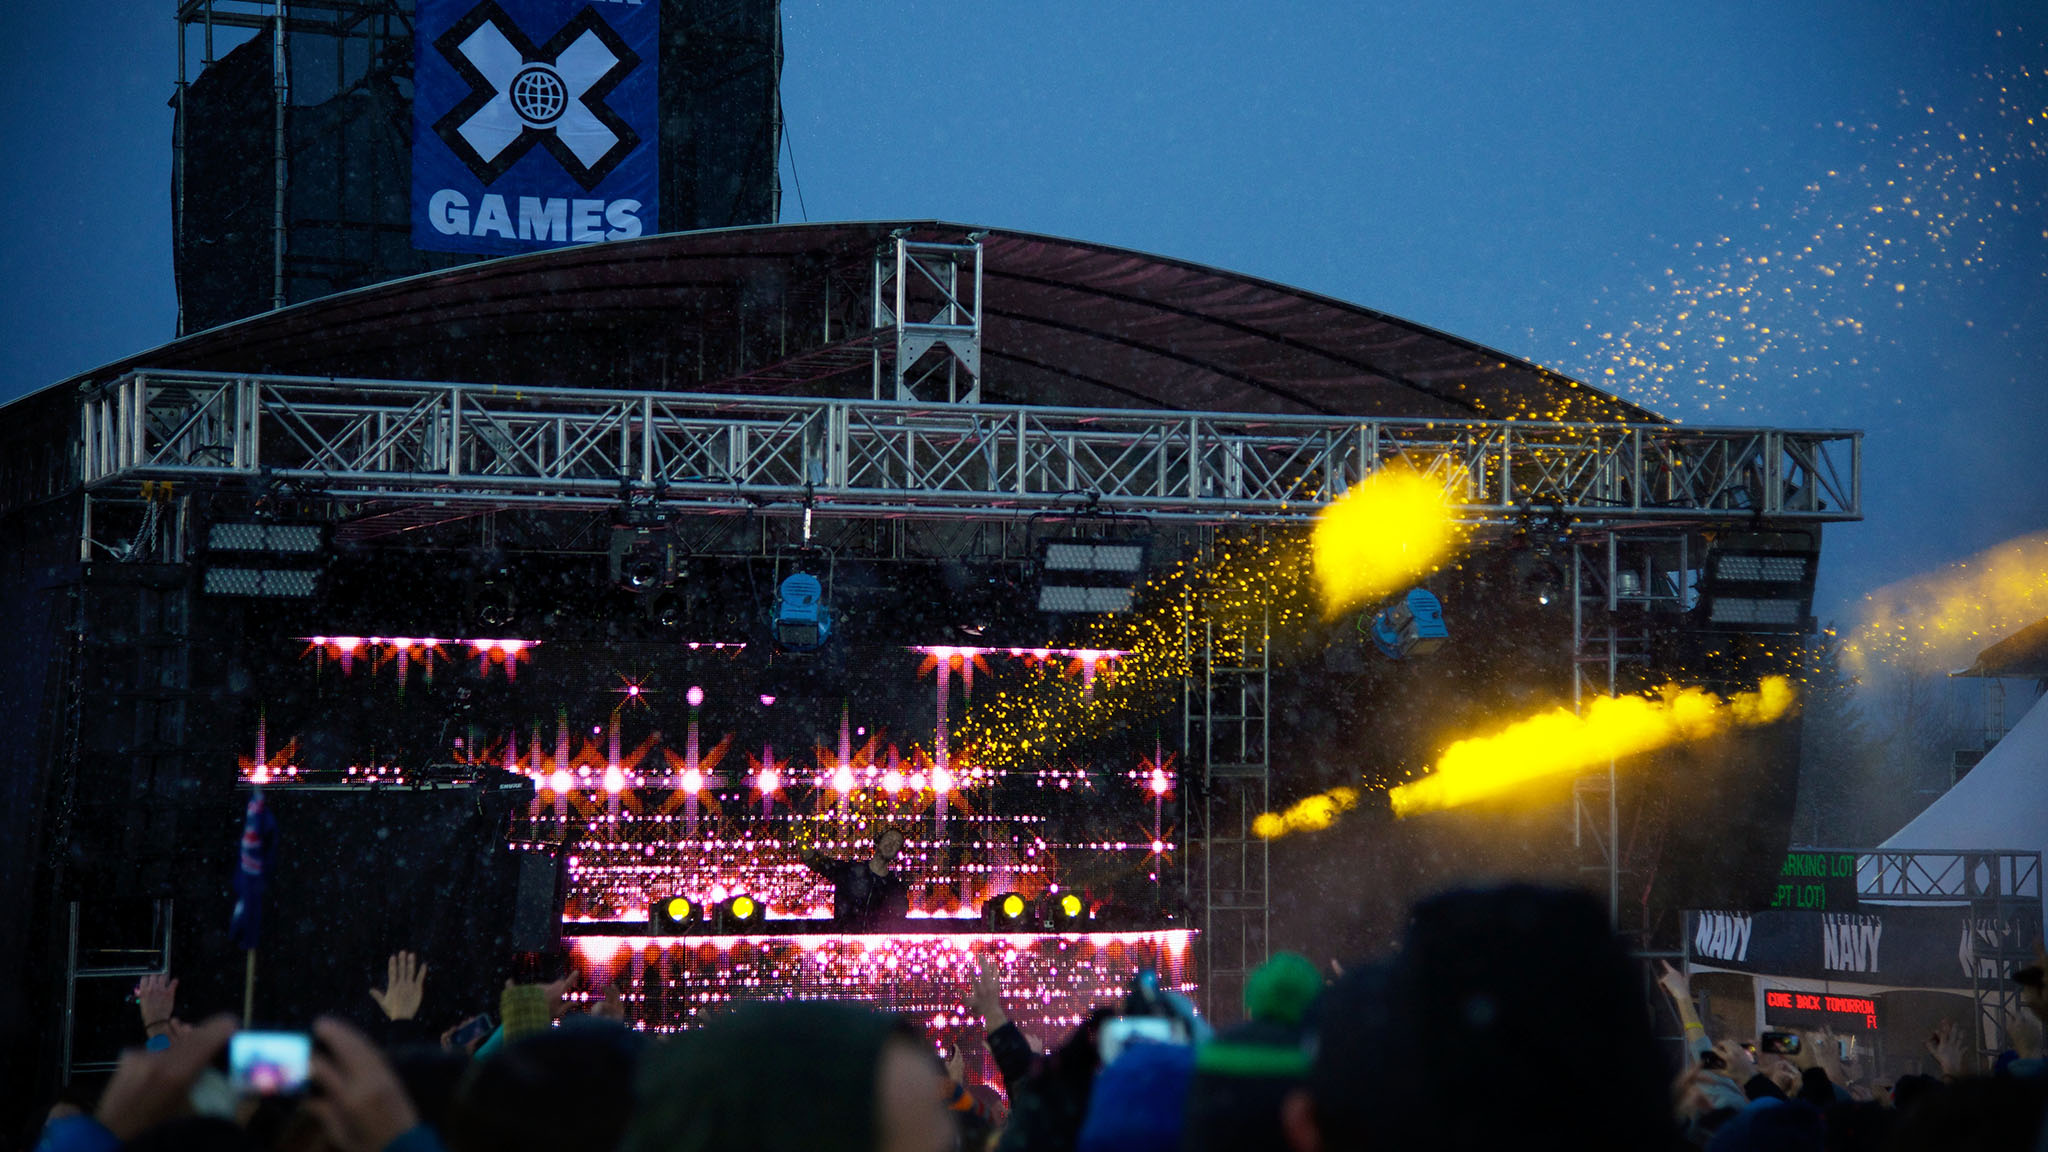 A light snowfall brought the magic for the Calvin Harris X Games MUSIC show at X Games Aspen Saturday afternoon.